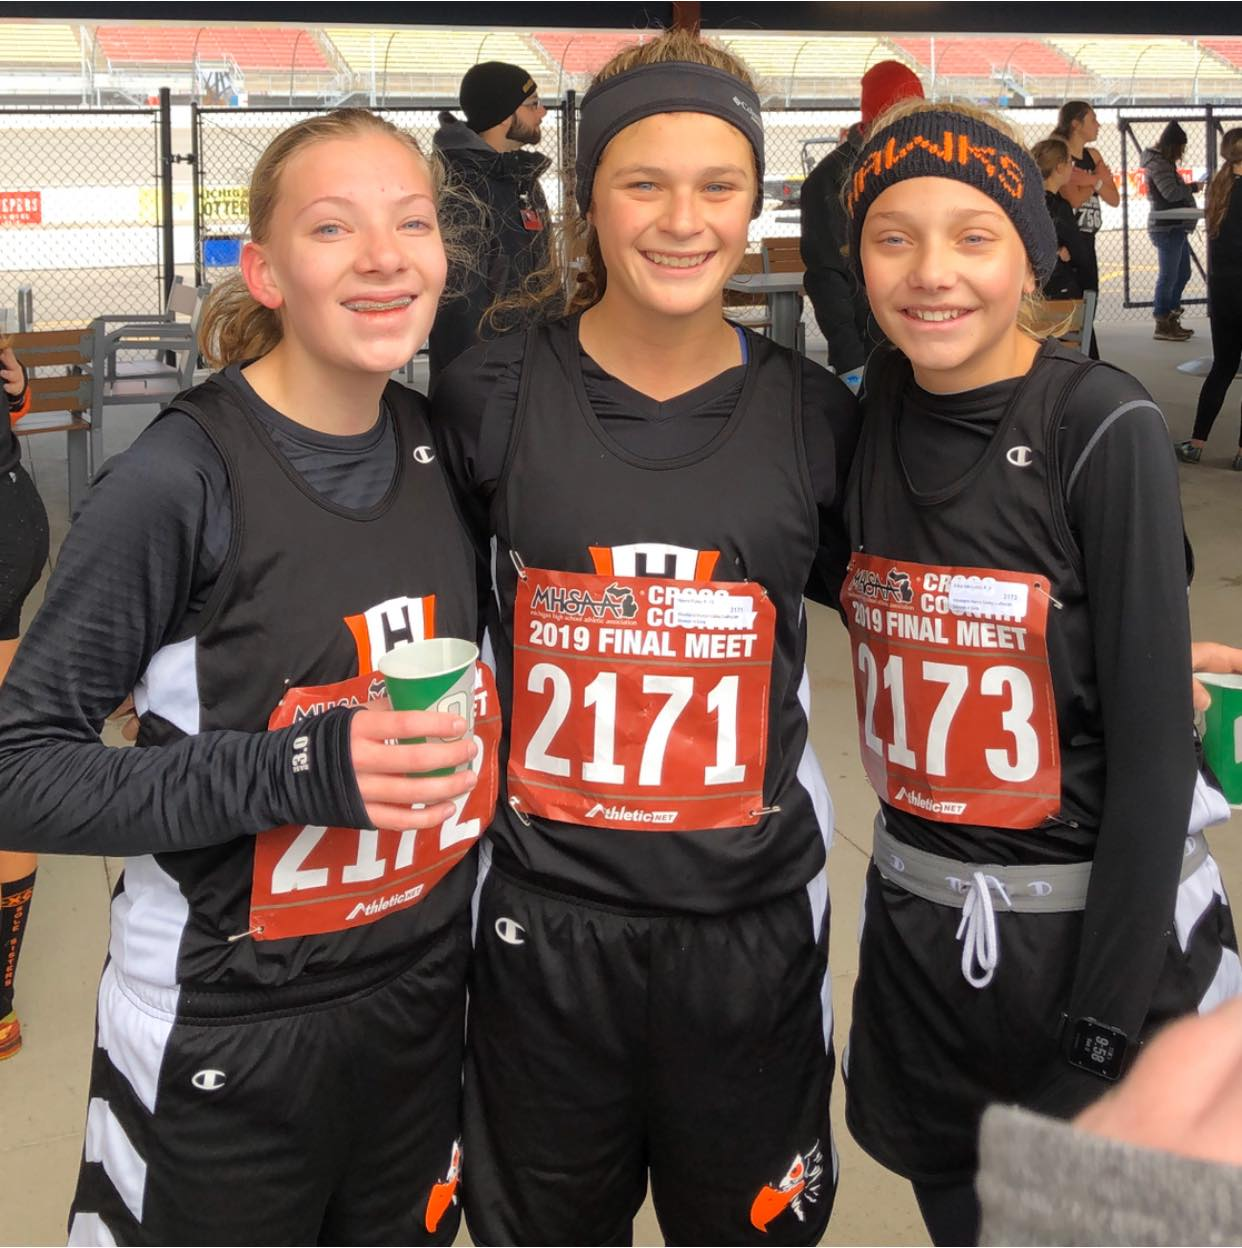 Erika VanLoton Finishes 7th at State Cross Country Finals